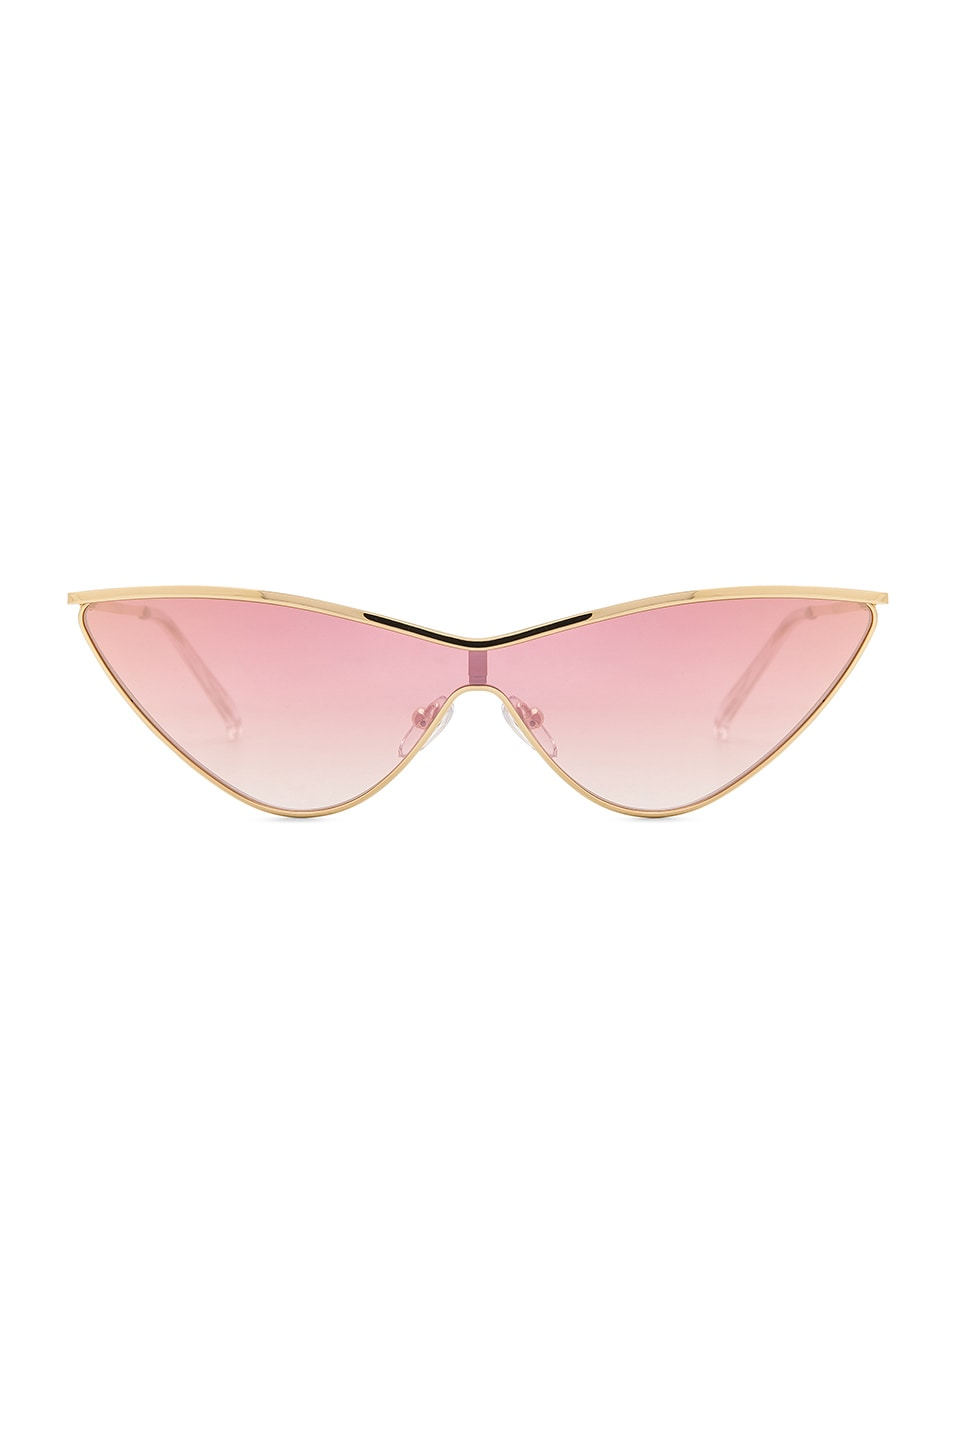 Le Specs x Adam Selman The Fugitive in Bright Gold & Rose Gradient Mirror